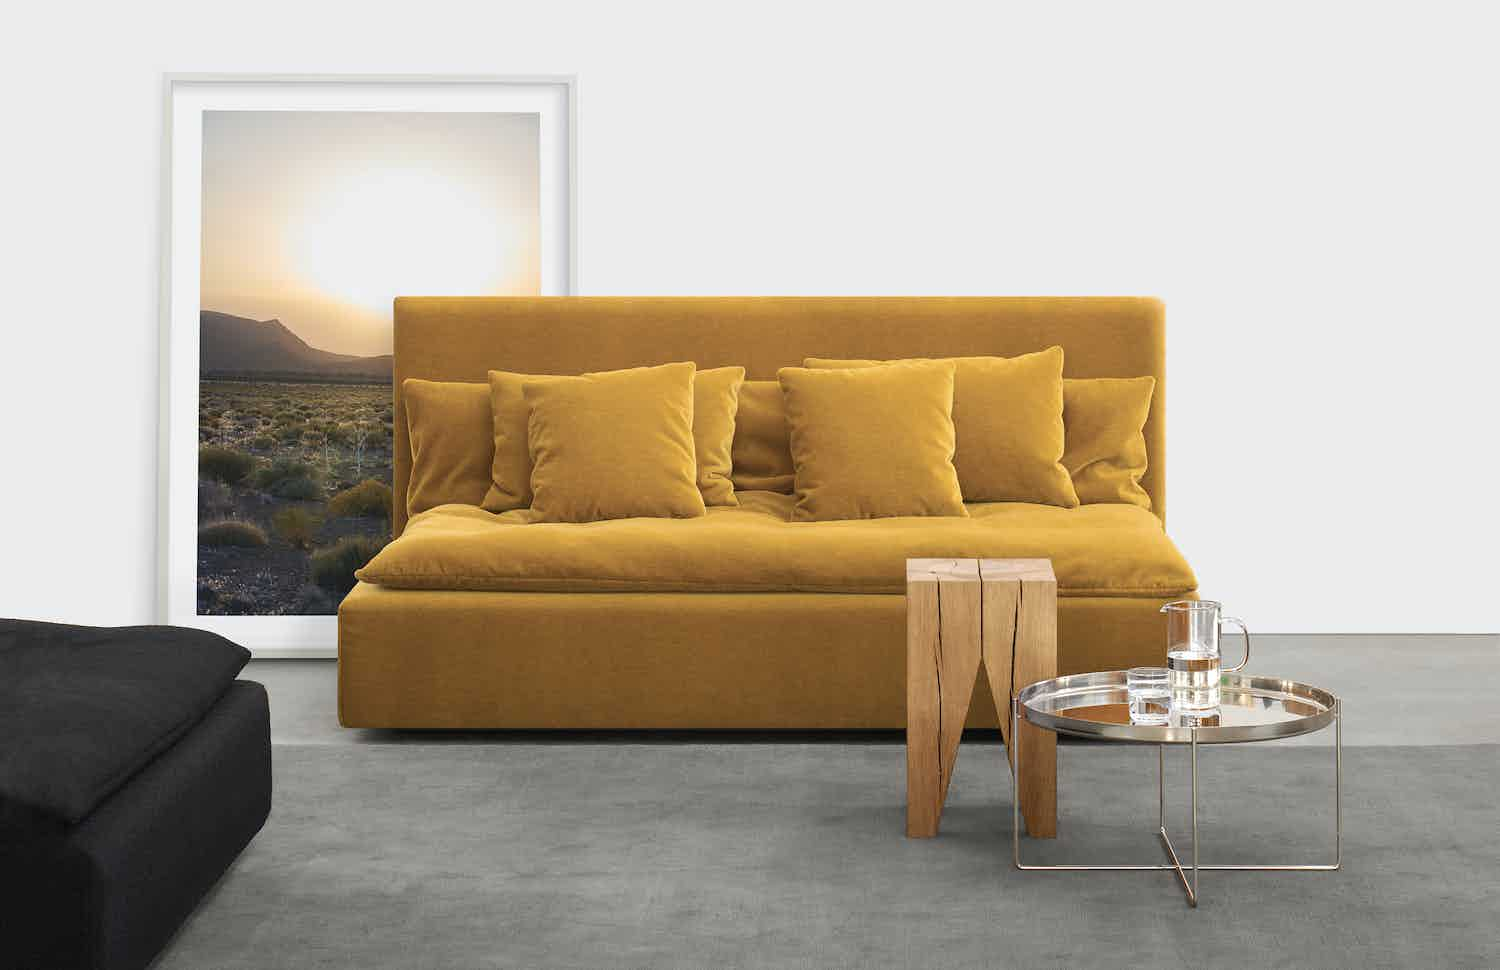 E15 furniture backenzahn side table yellow couch haute living